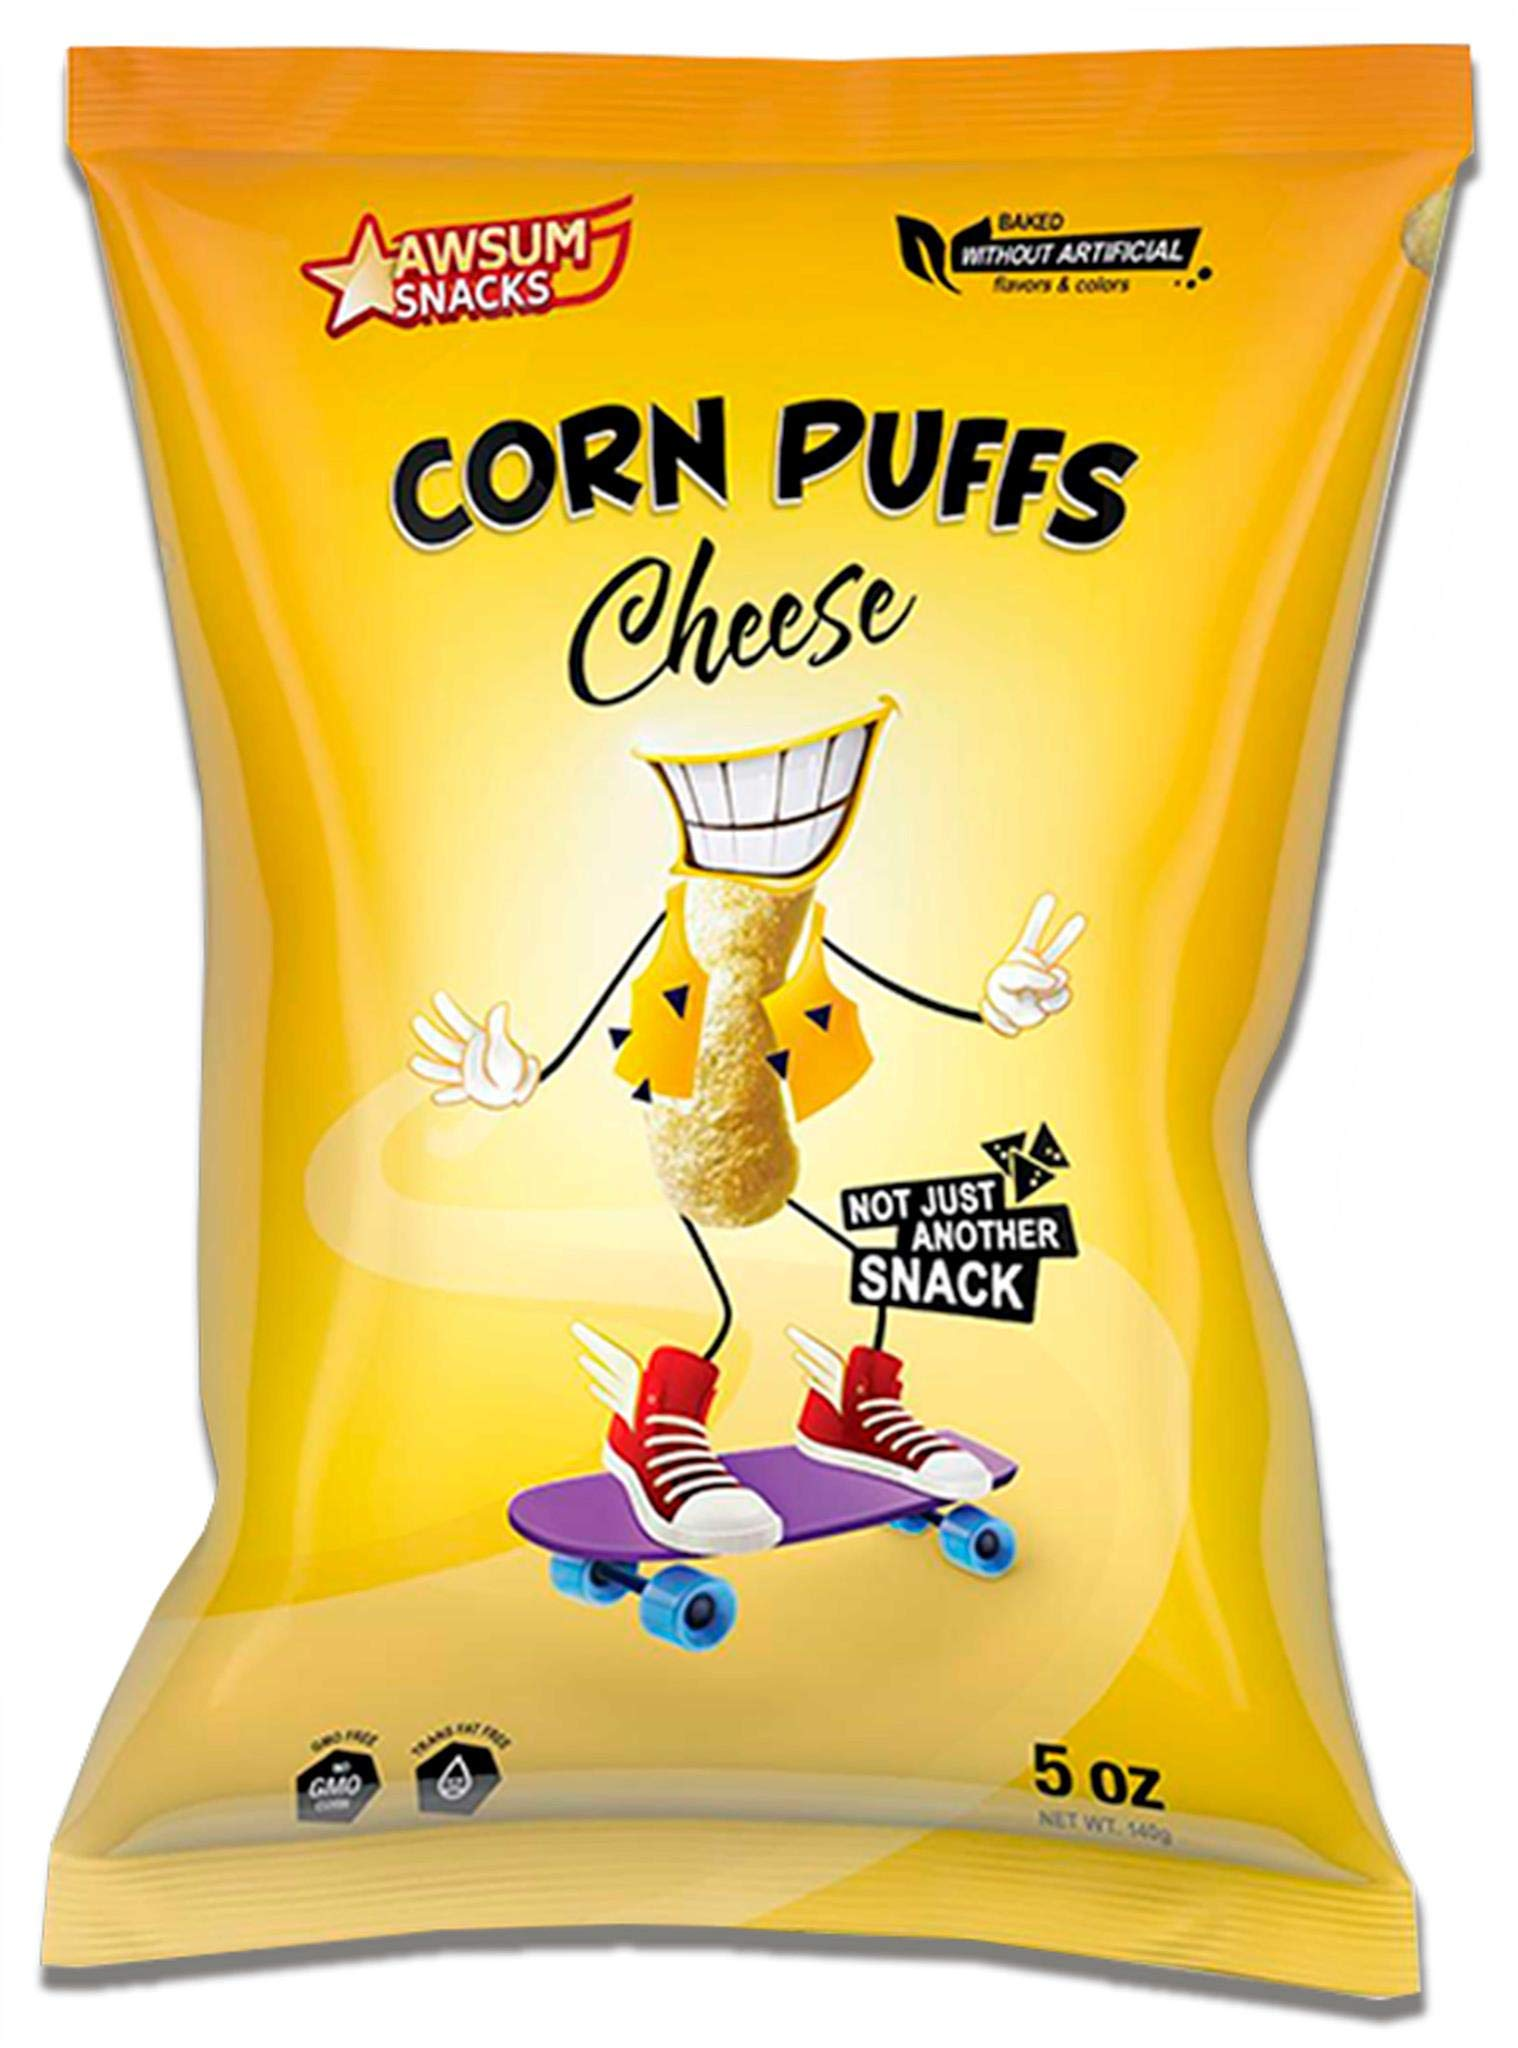 Cheese Corn Puffs, 5 oz bag (Pack of 9 bags)